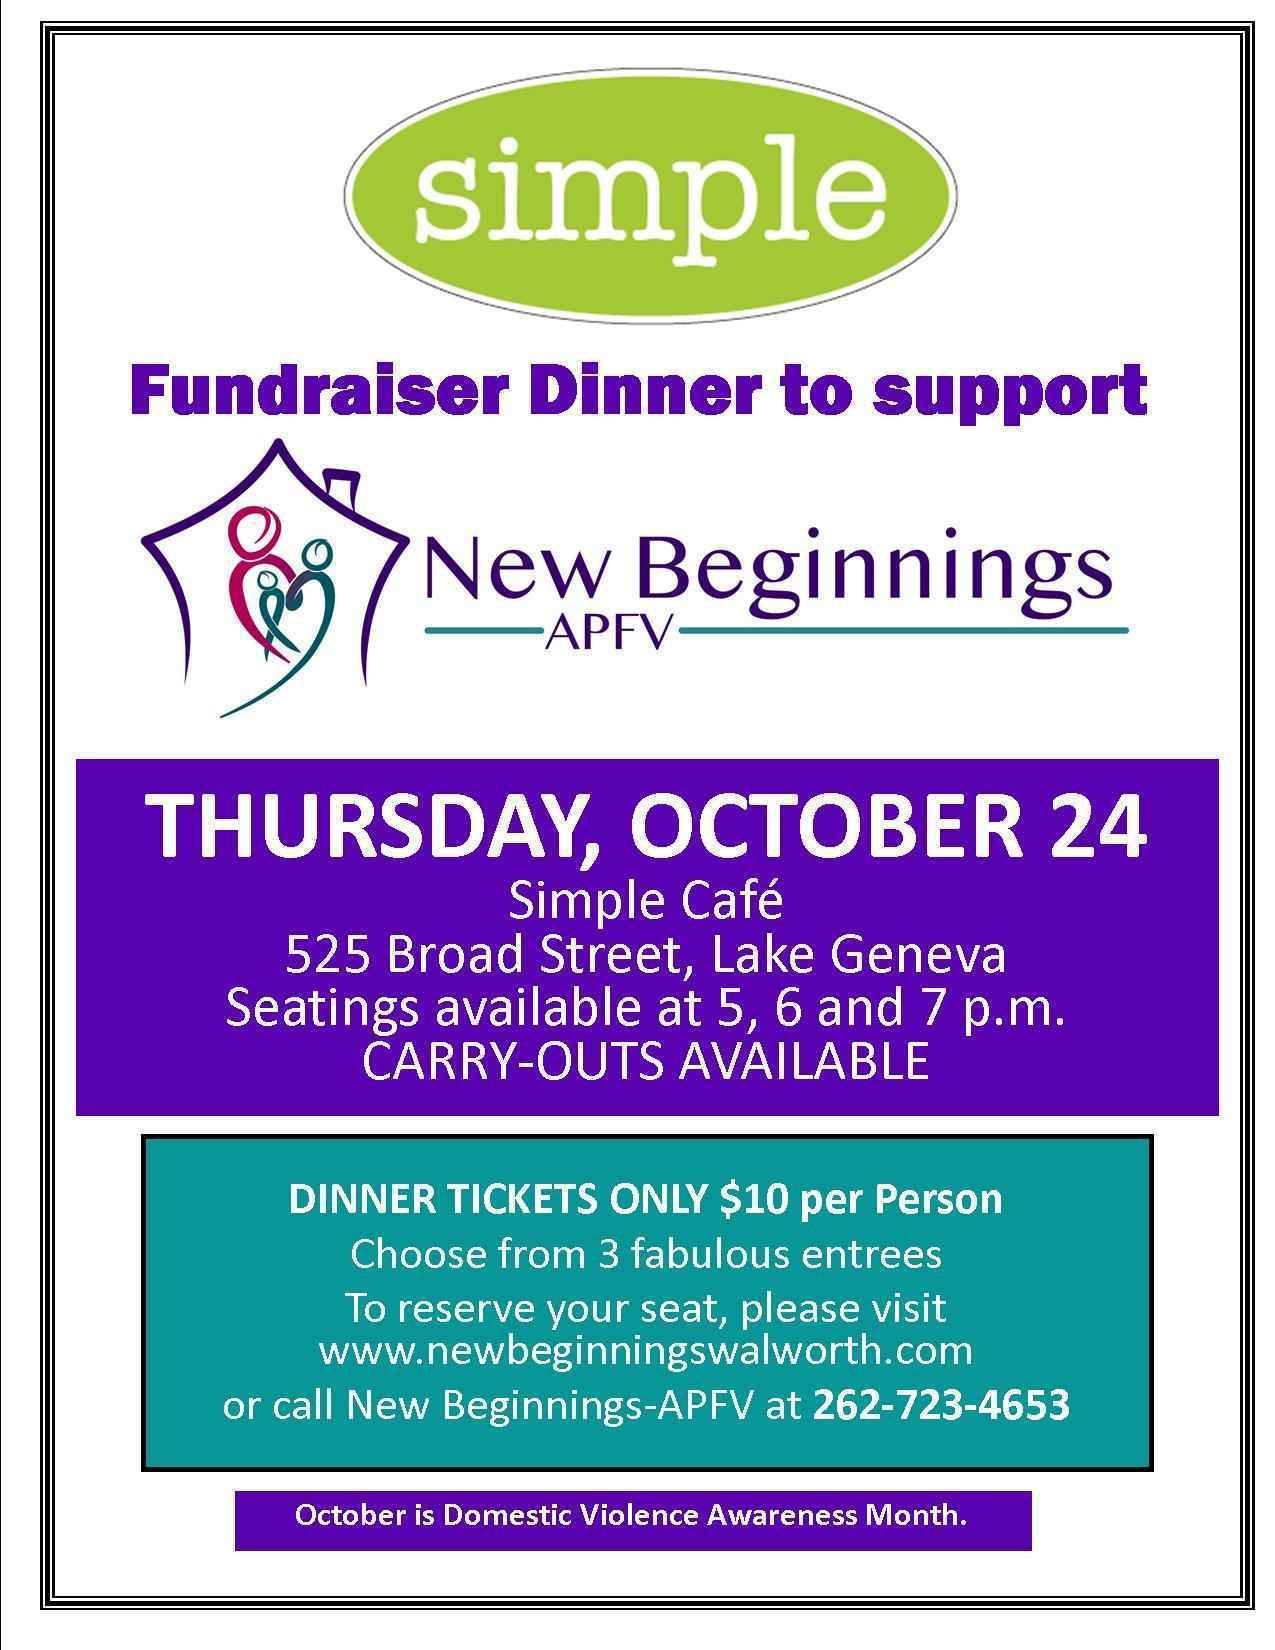 Simple Cafe Dinner Fundraiser image